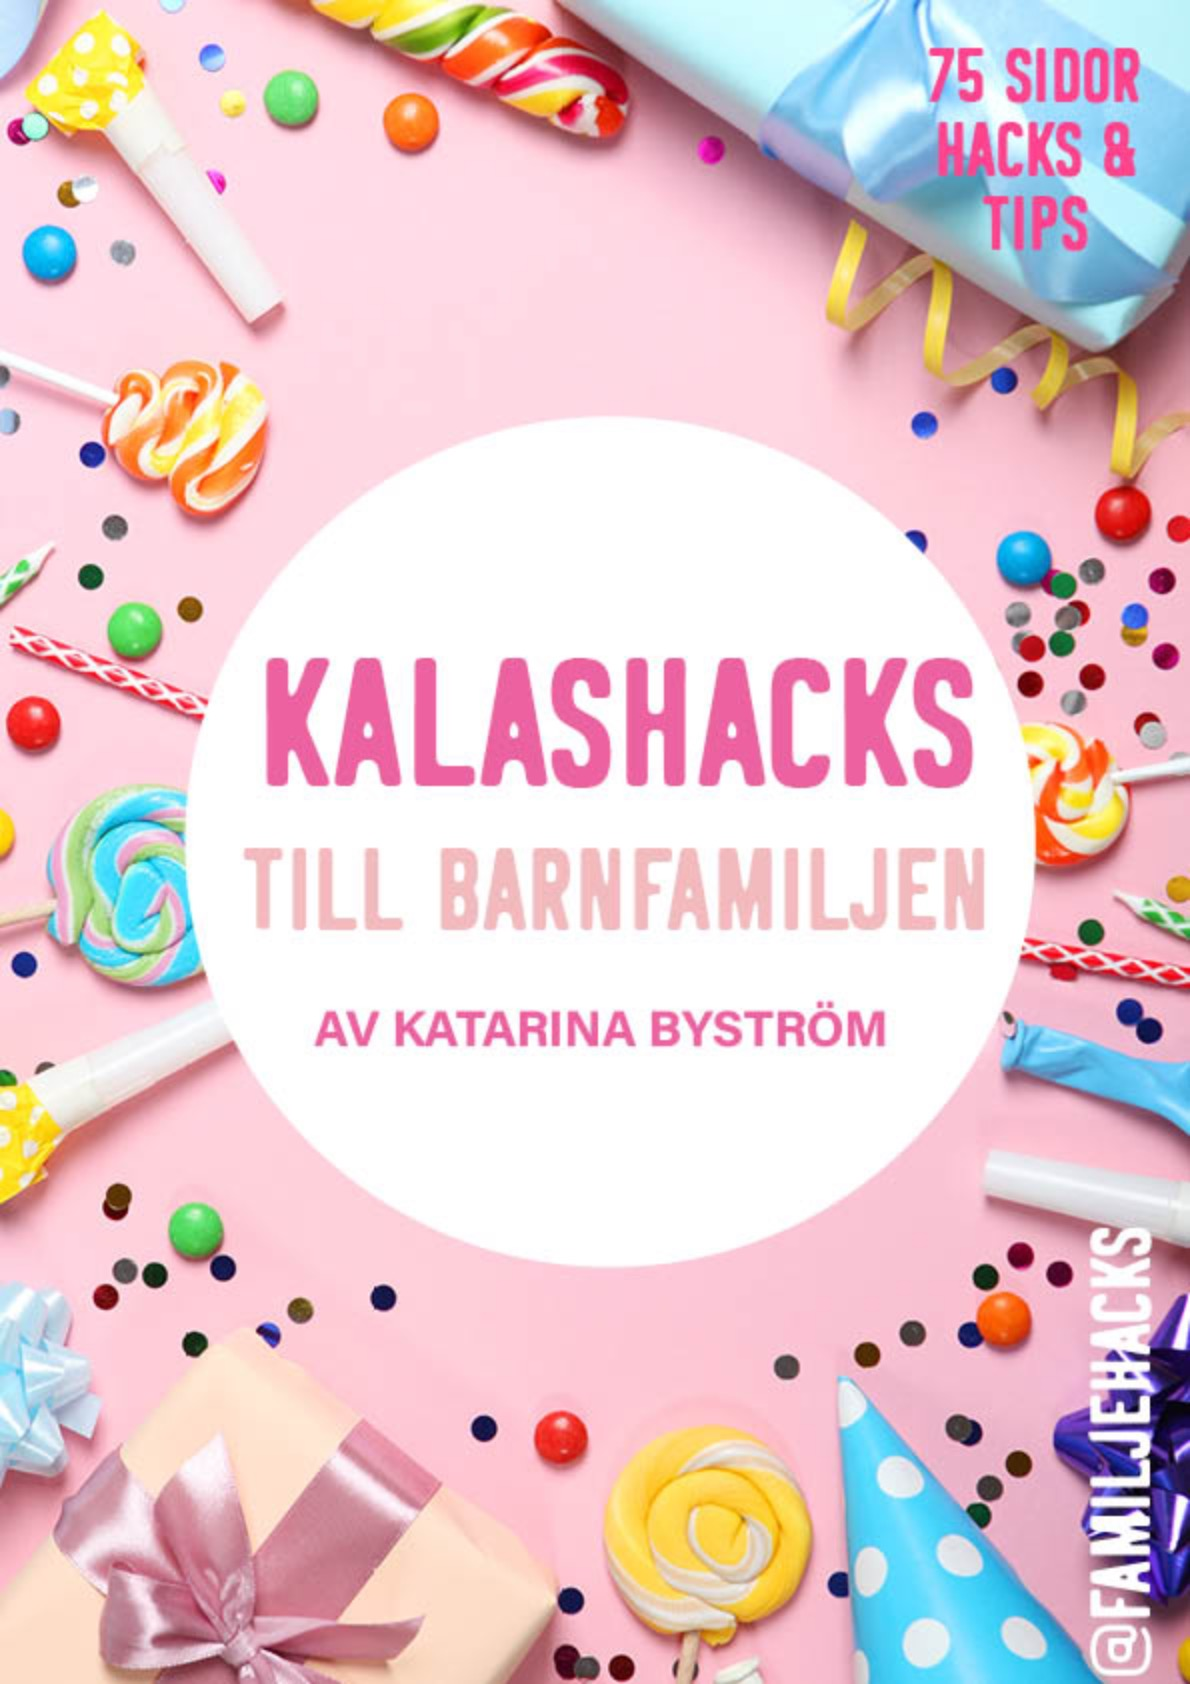 KALASHACKS - tips och hacks för barnkalas (digital bok)